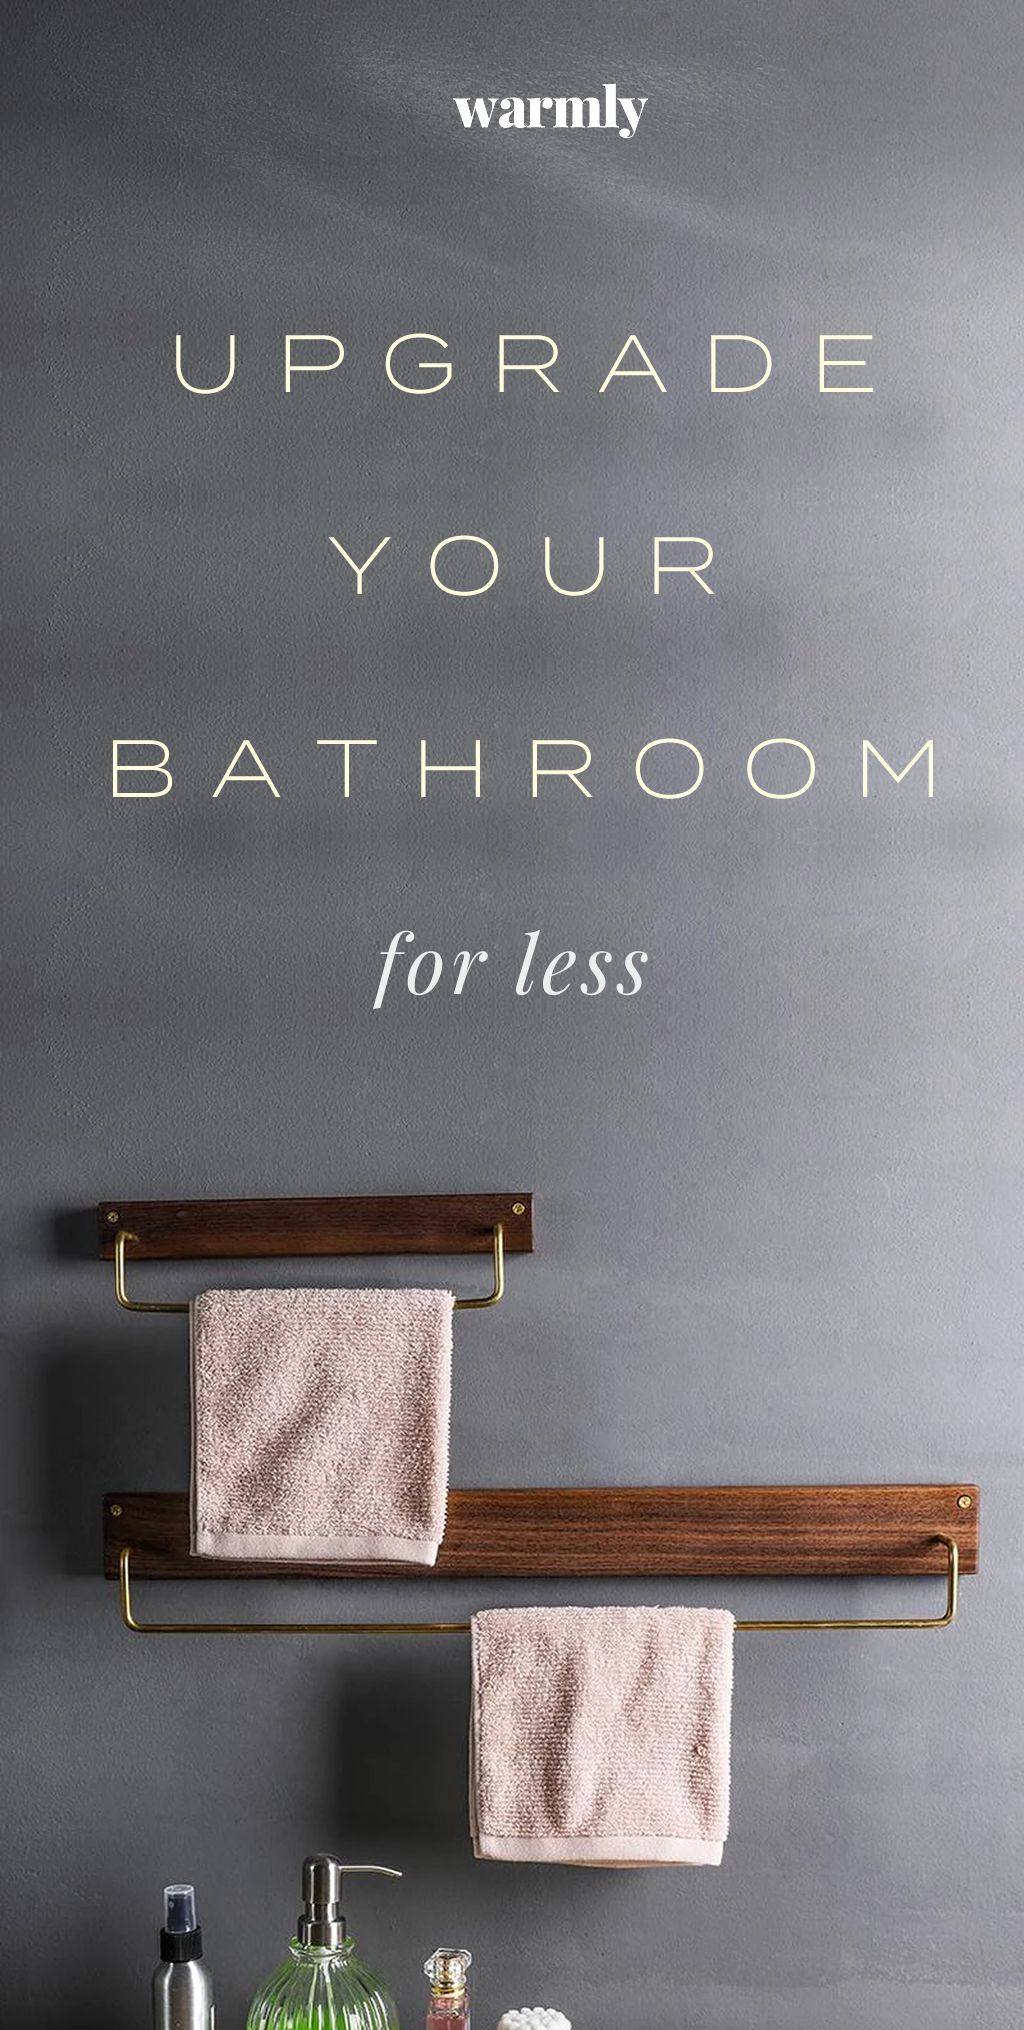 Upgrade Your Bathroom For Less #bathroomdecoration